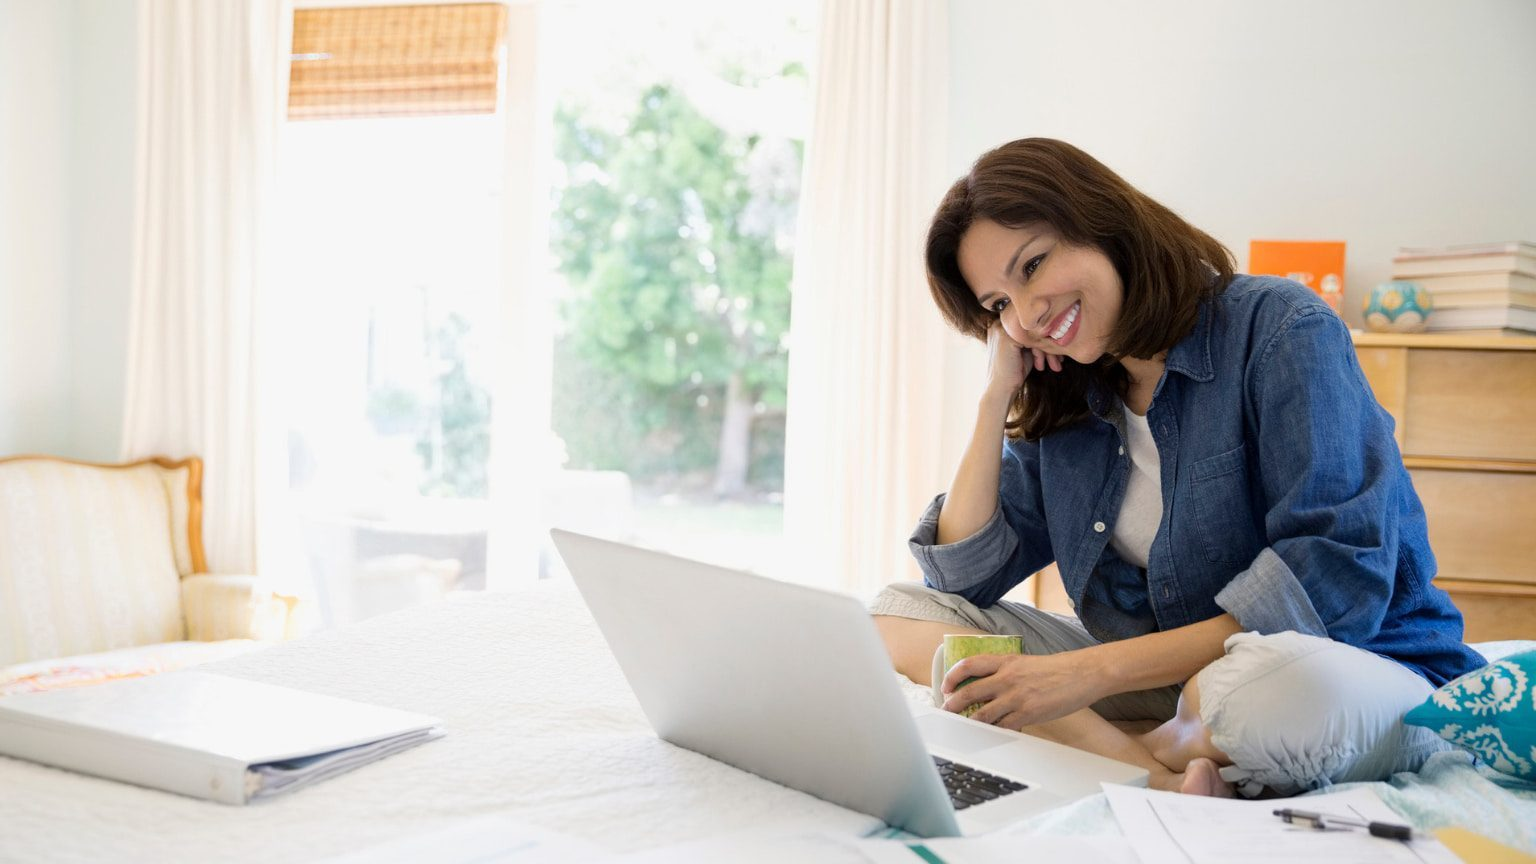 Seated, smiling brunette woman looking at her laptop